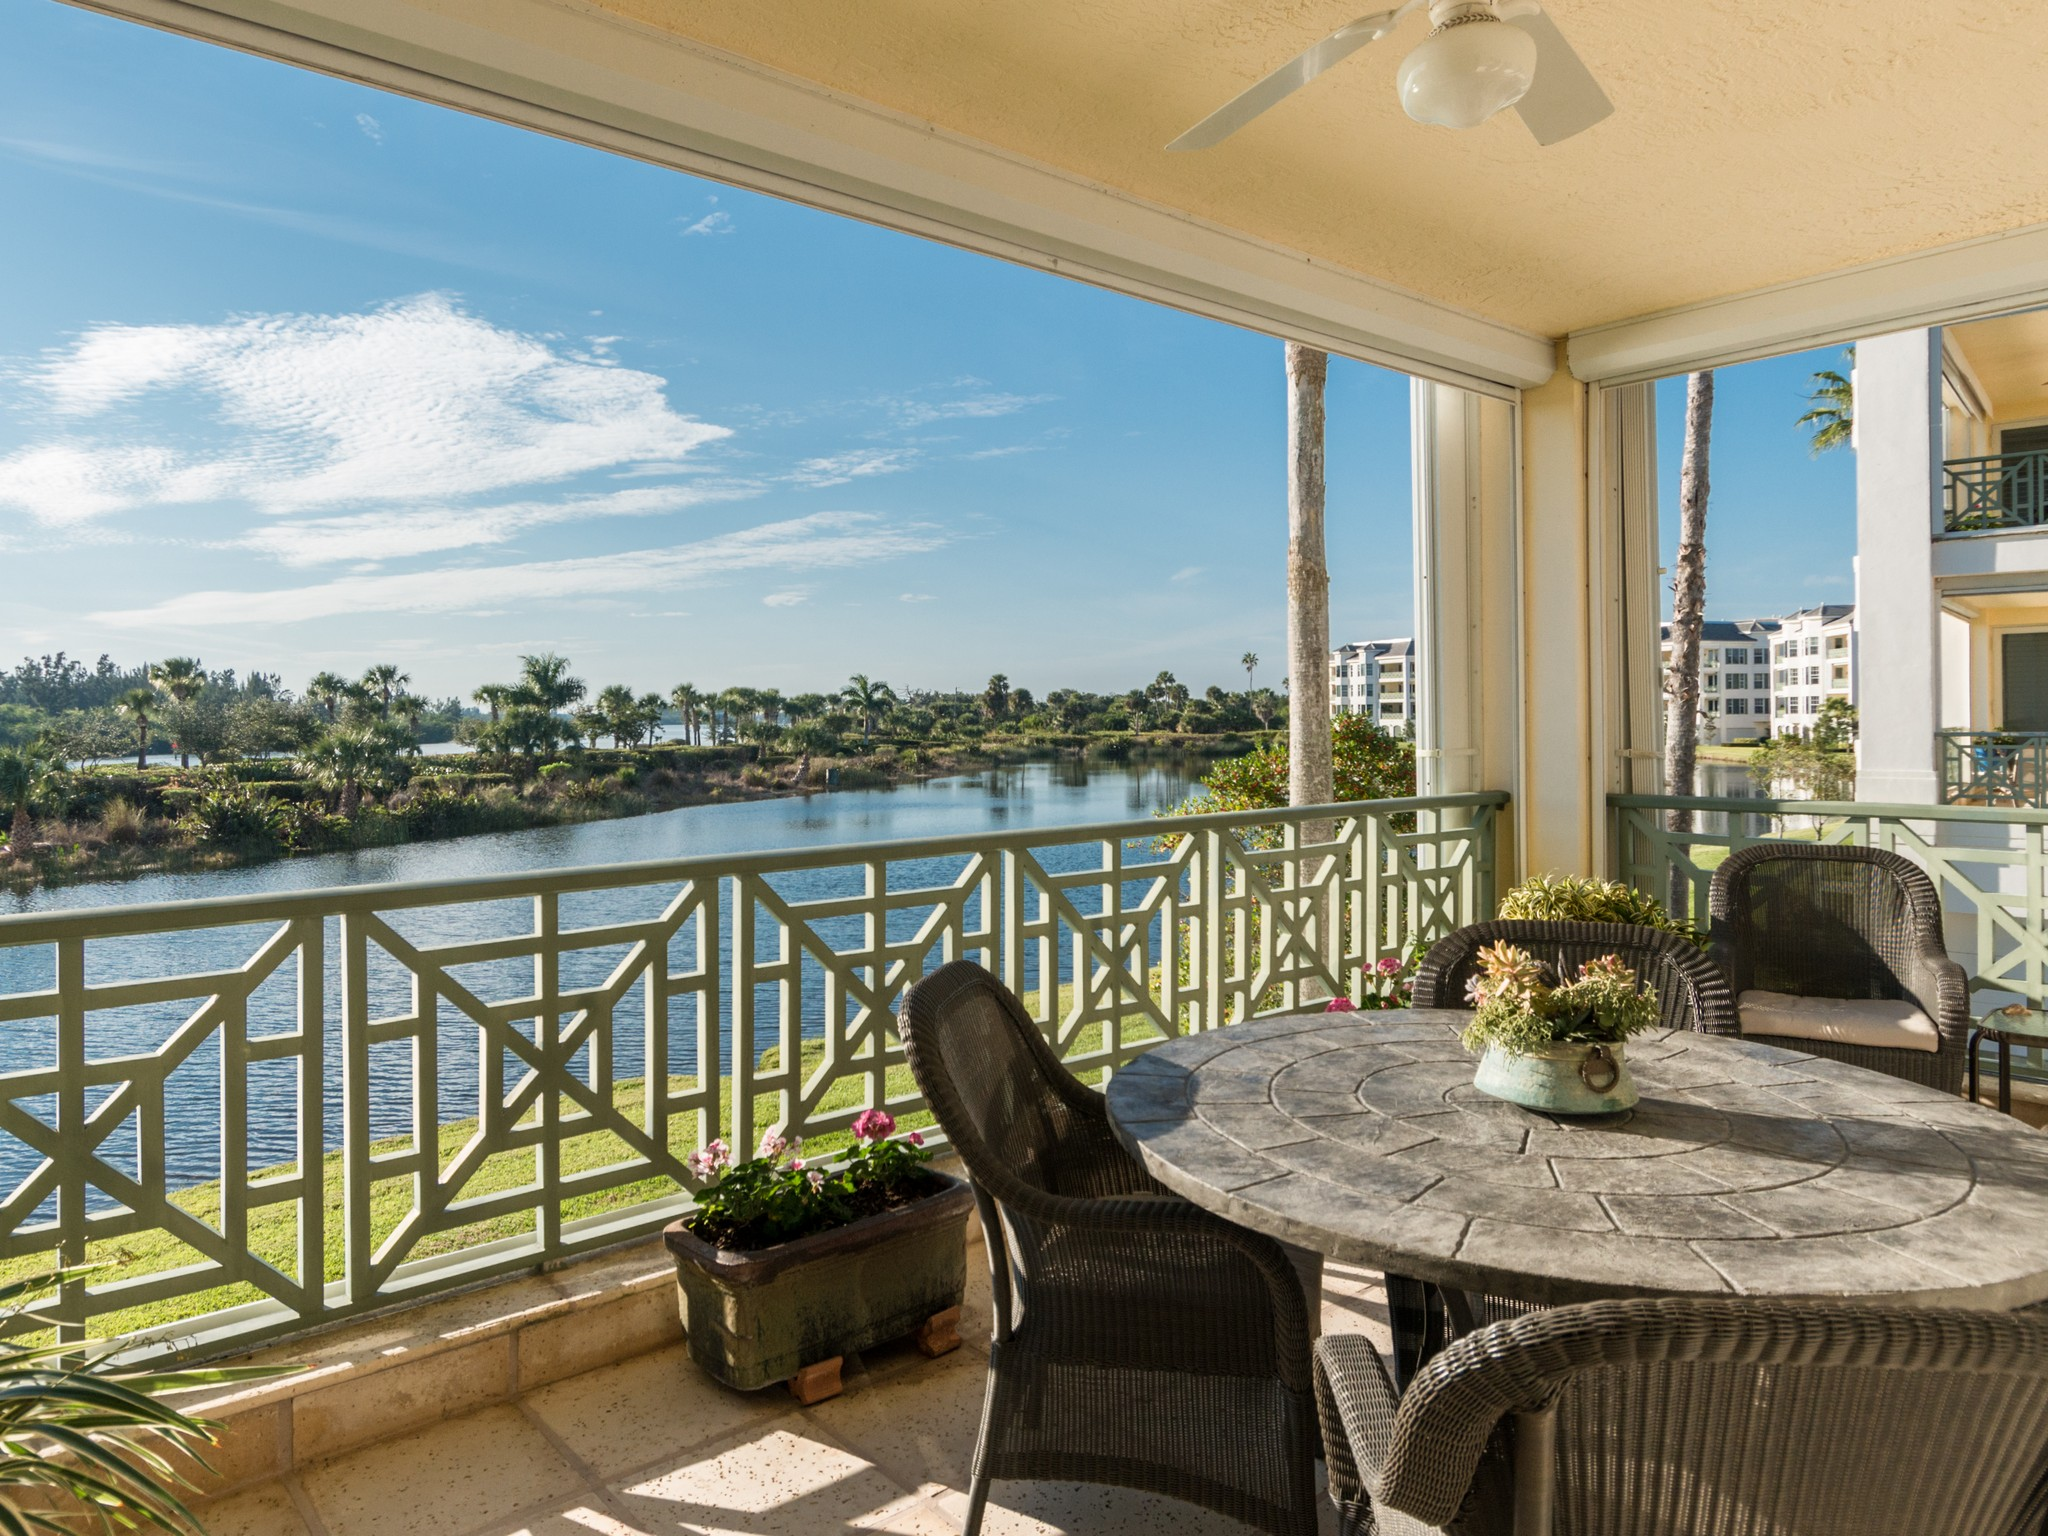 Maison unifamiliale pour l Vente à Panoramic views of the River and Lake from this Somerset Bay Condo 9013 Somerset Bay Lane #202 Vero Beach, Florida 32963 États-Unis